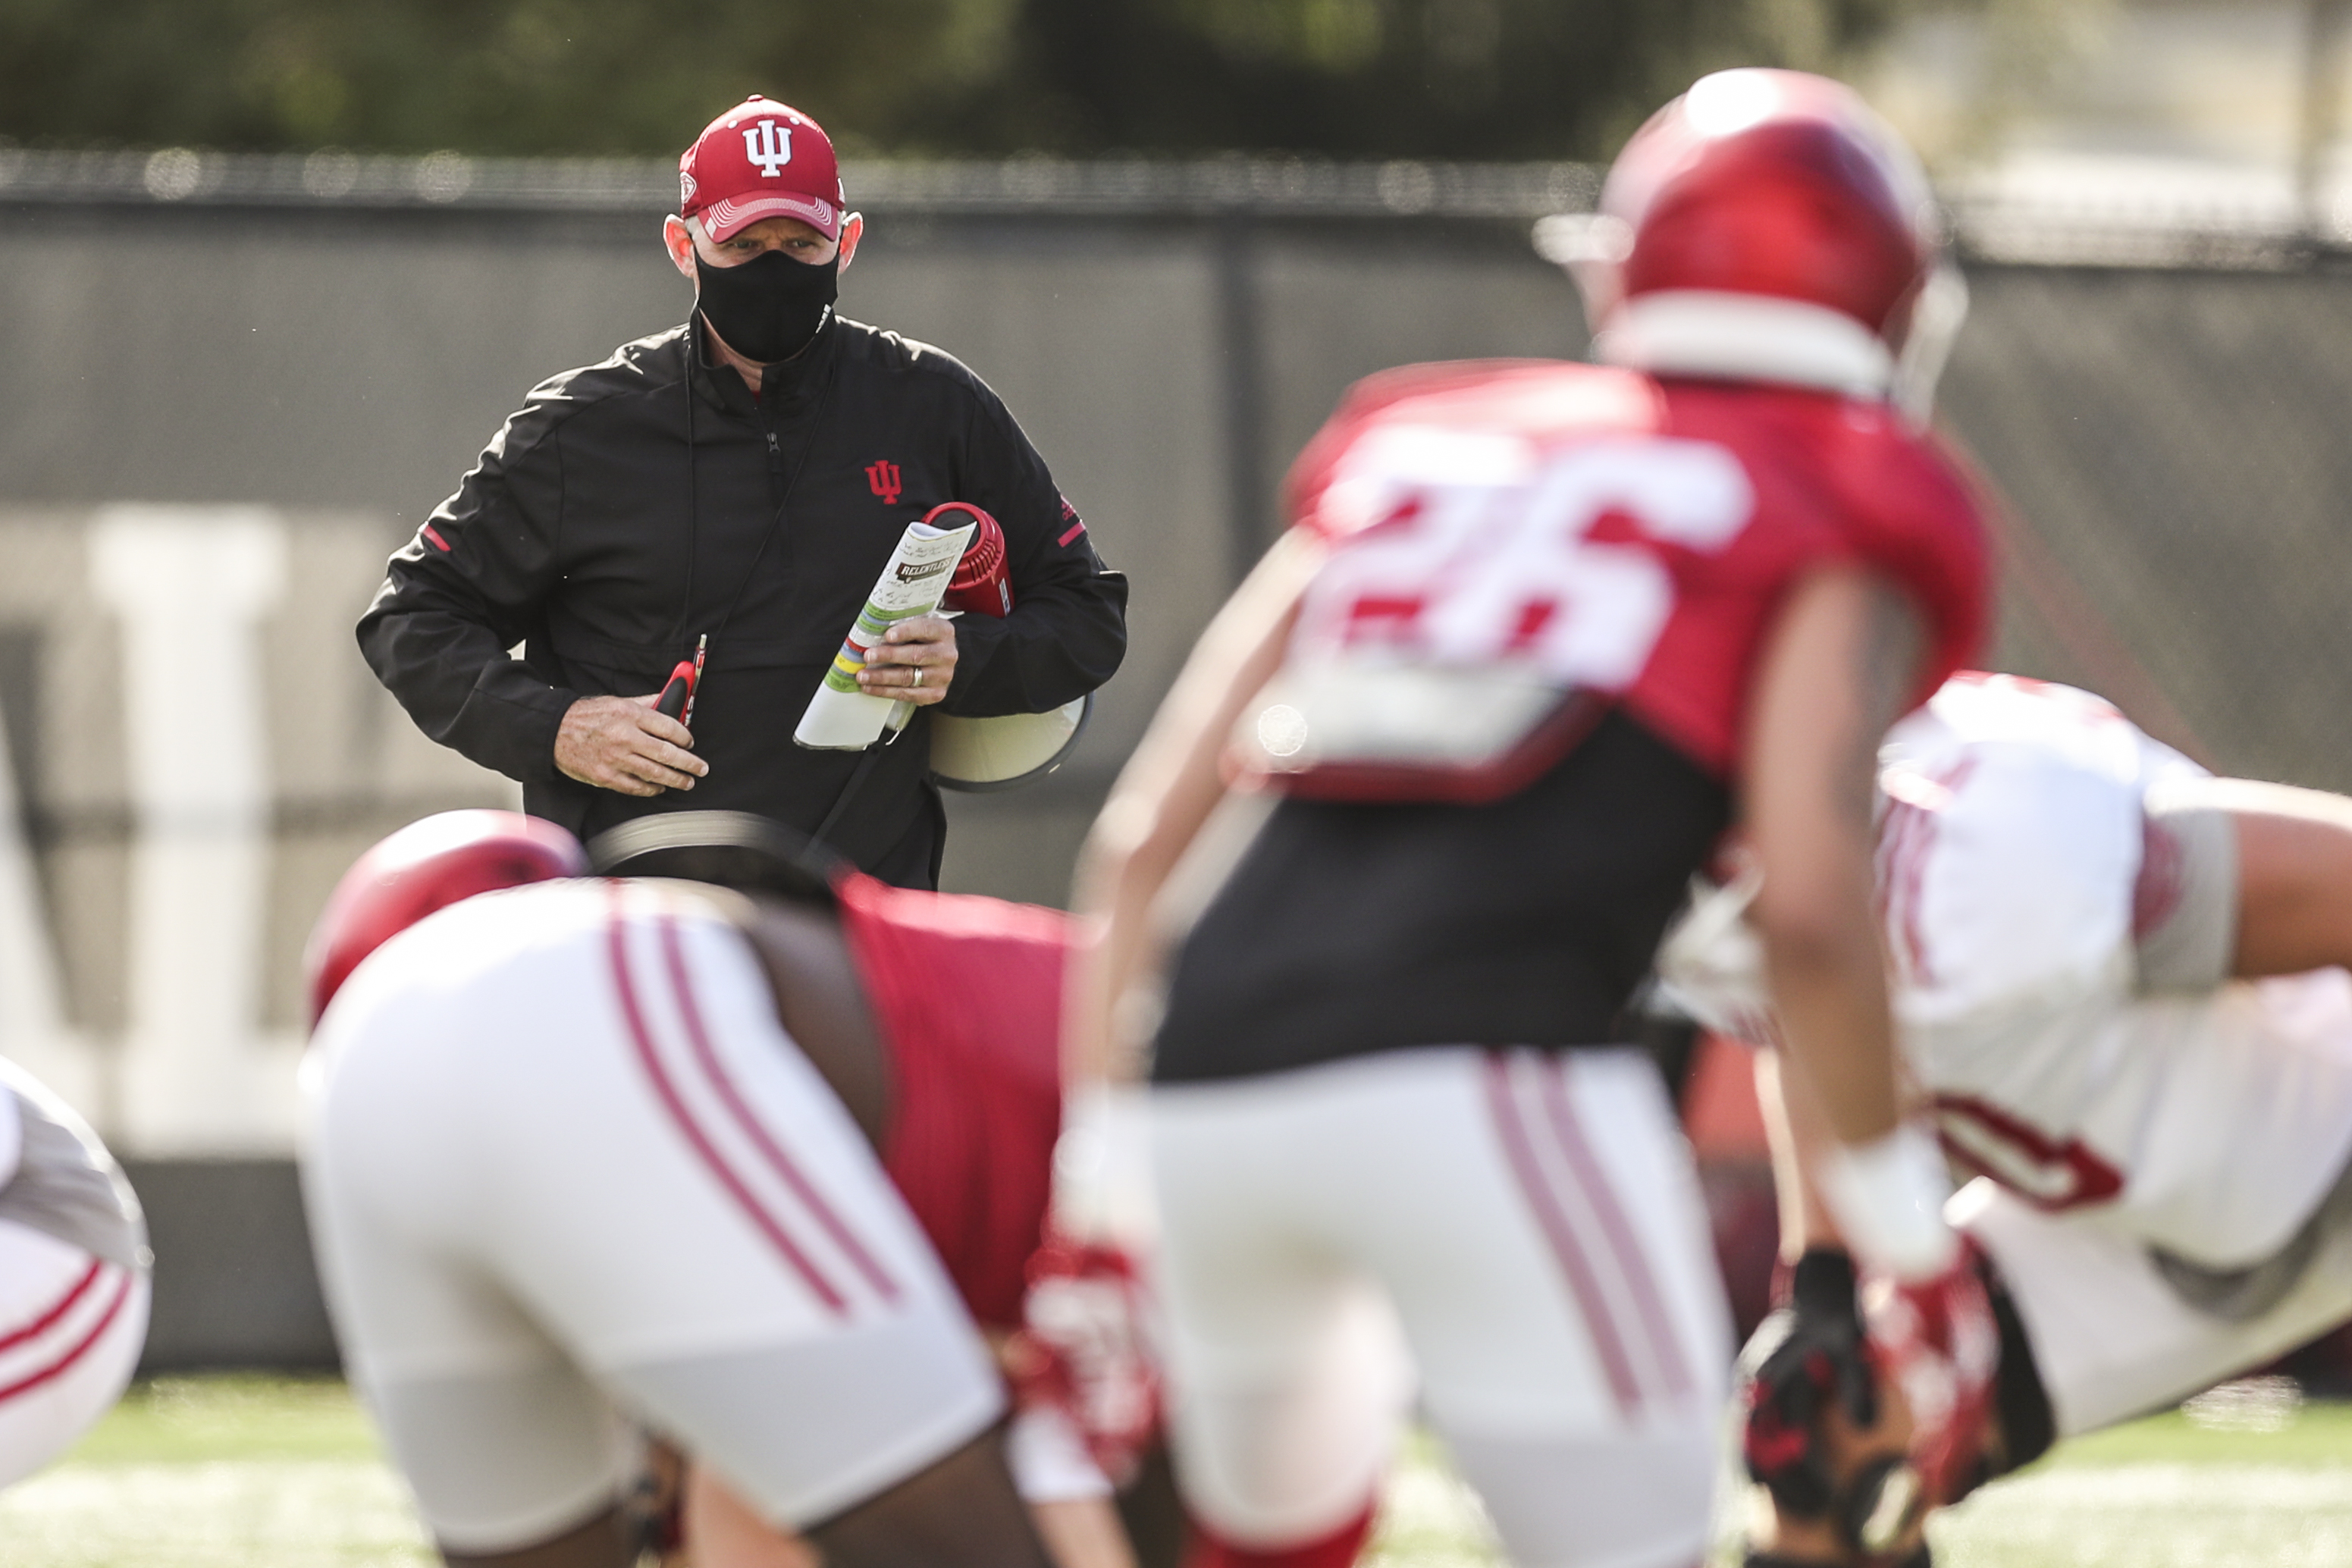 Indiana football coach Tom Allen watches over practice September 30 at the IU practice fields.